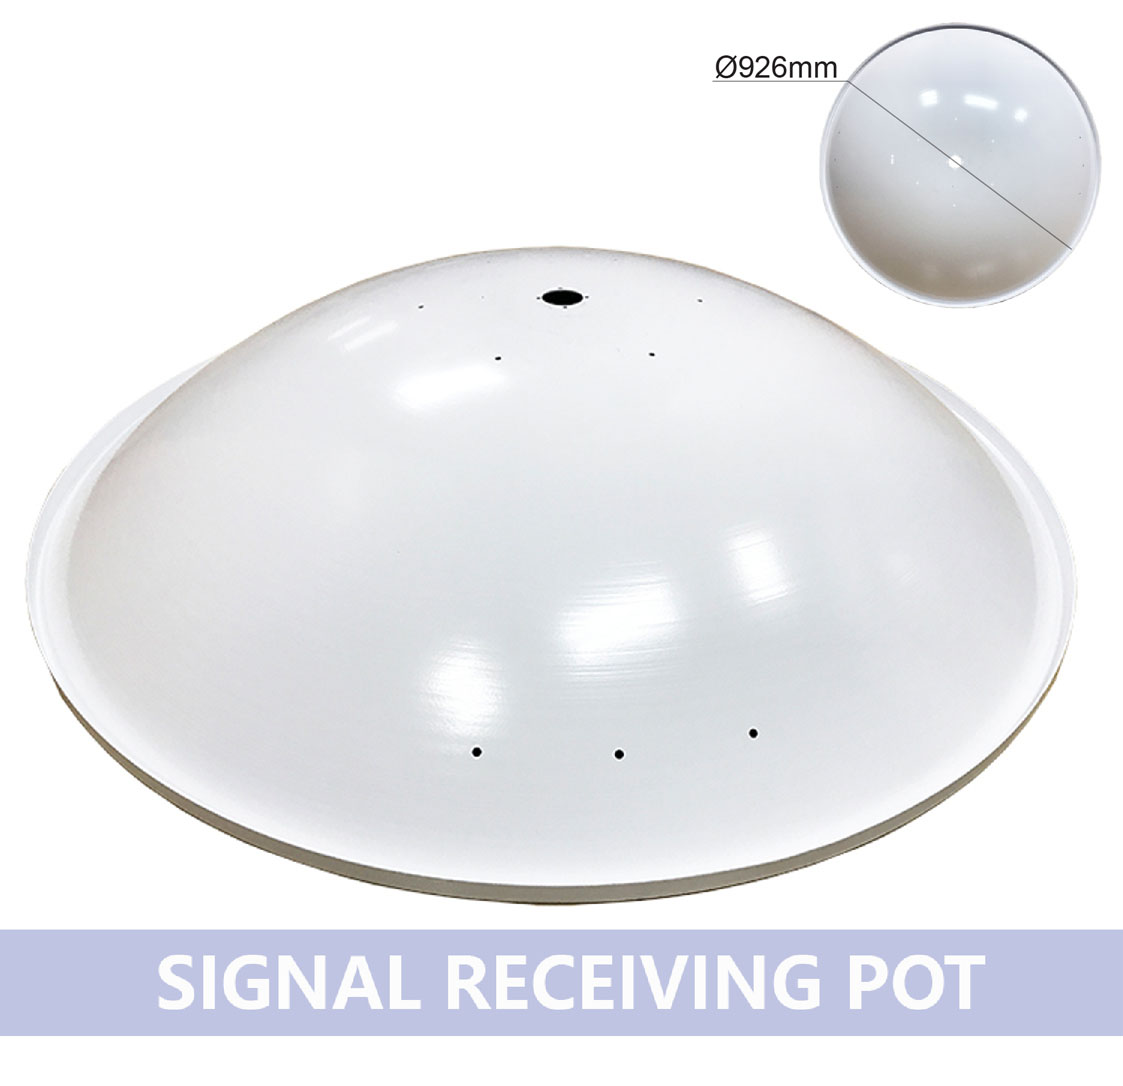 信號接收器SIGNAL RECEIVING POT